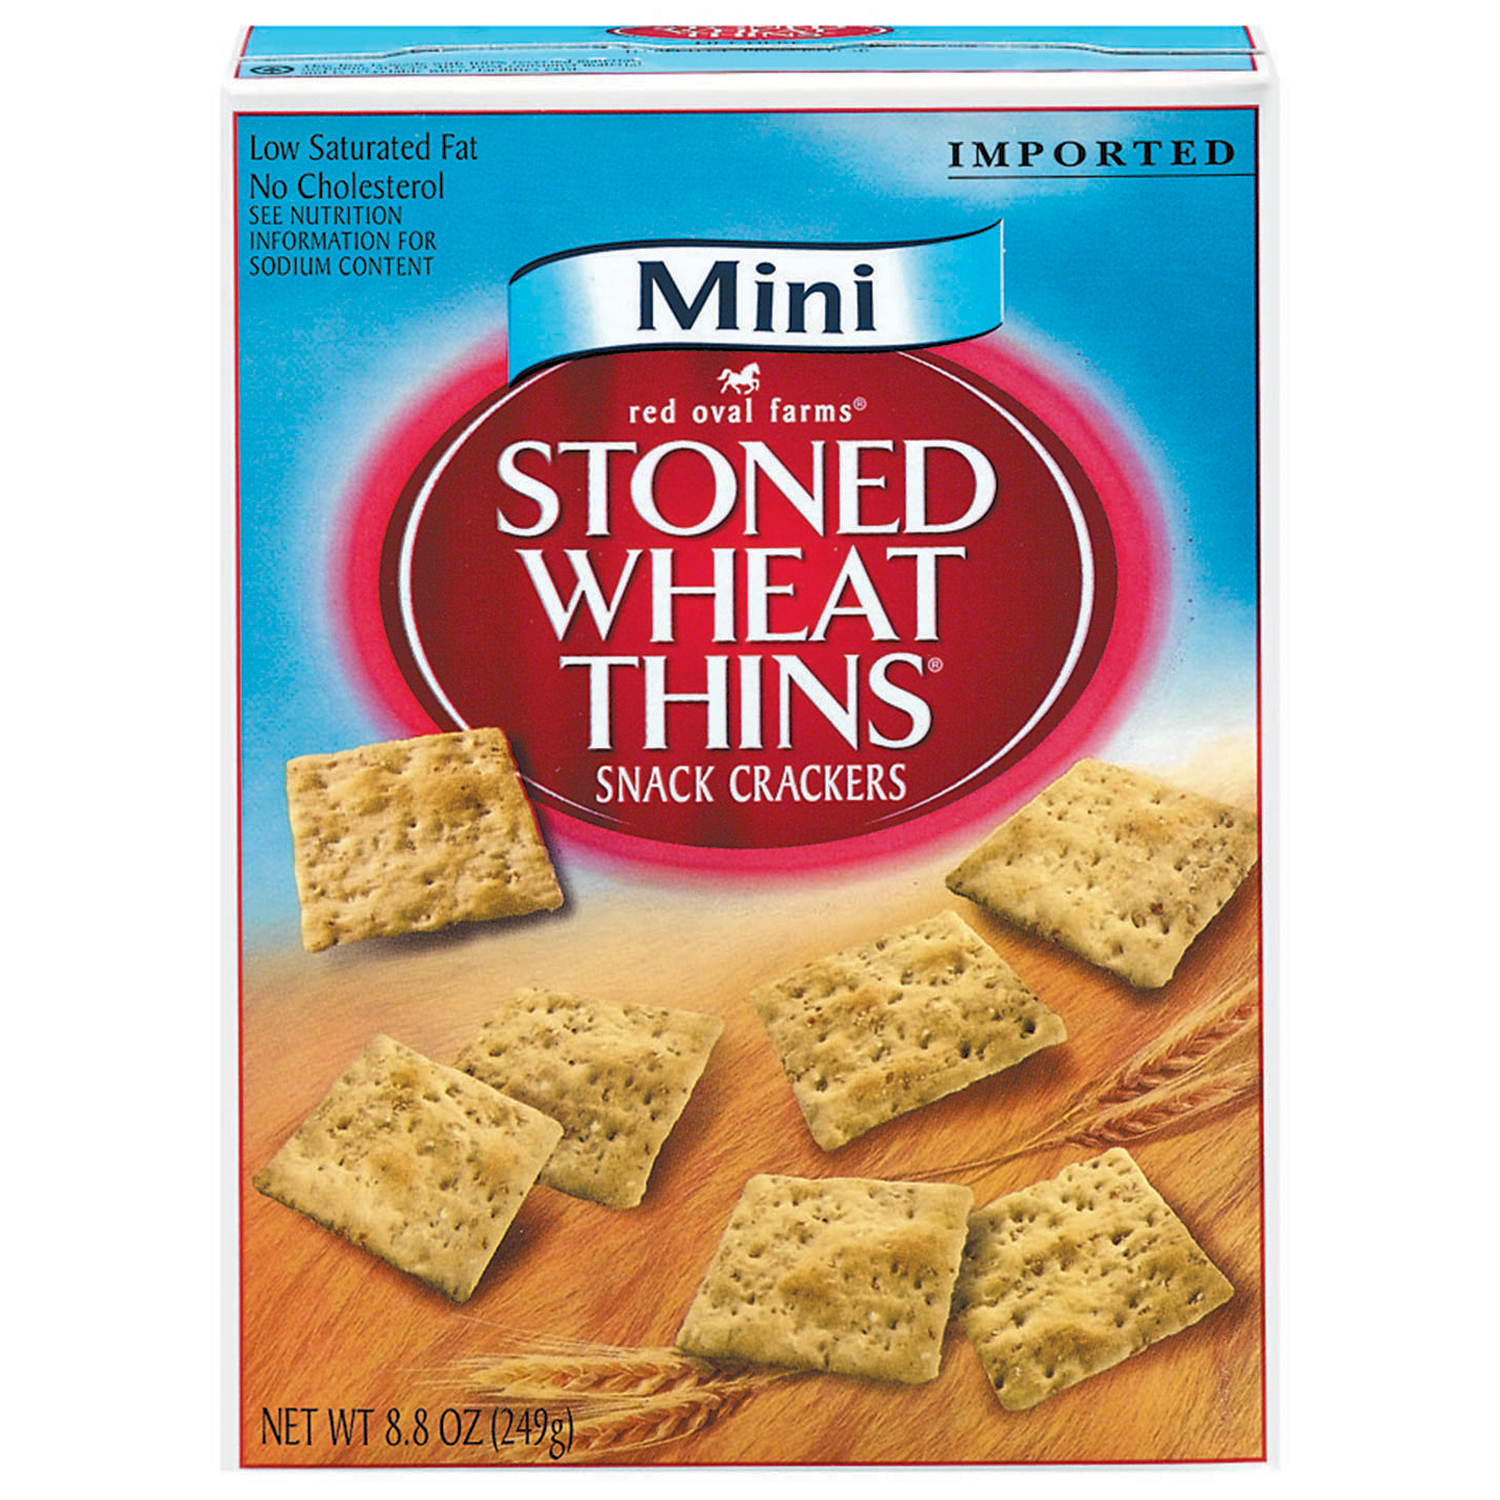 RED OVAL FARMS Stoned Wheat Thins Mini Crackers 8.8 oz